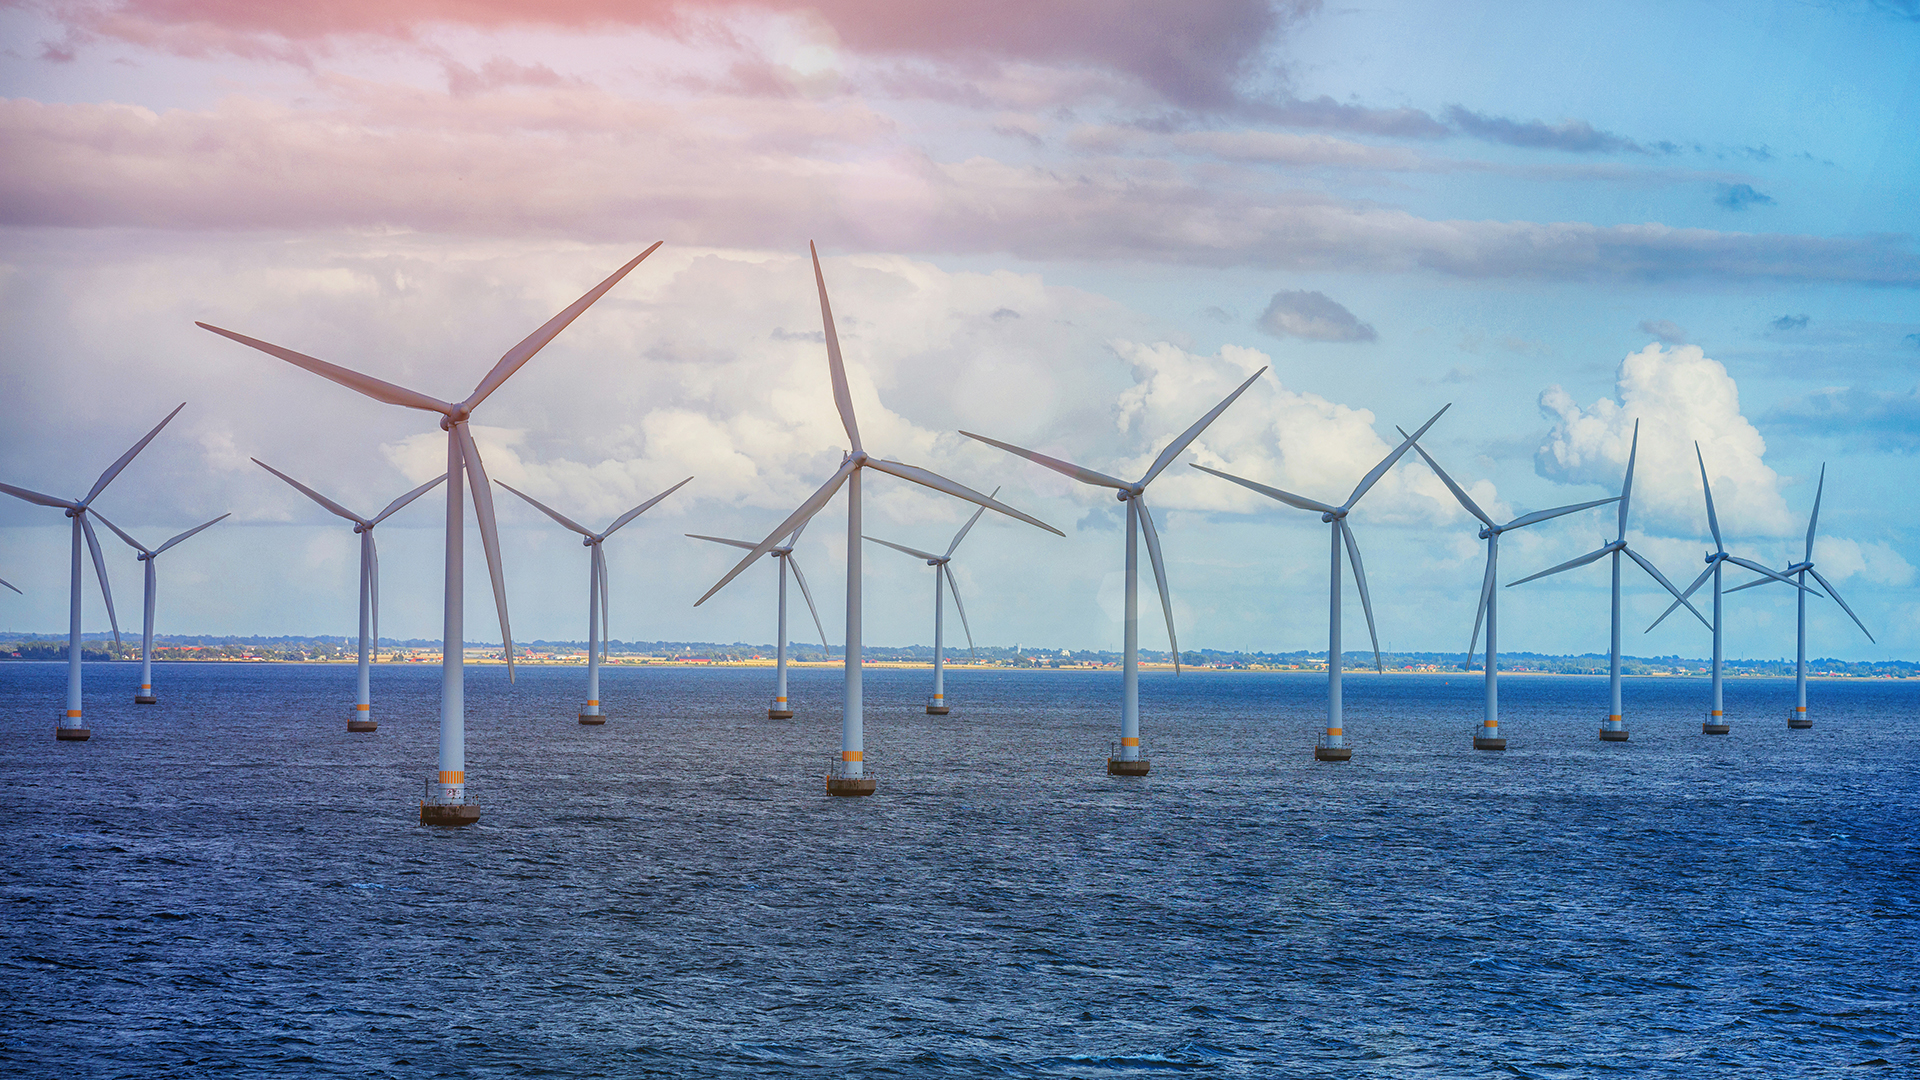 A new approach to coordinating offshore electricity grids